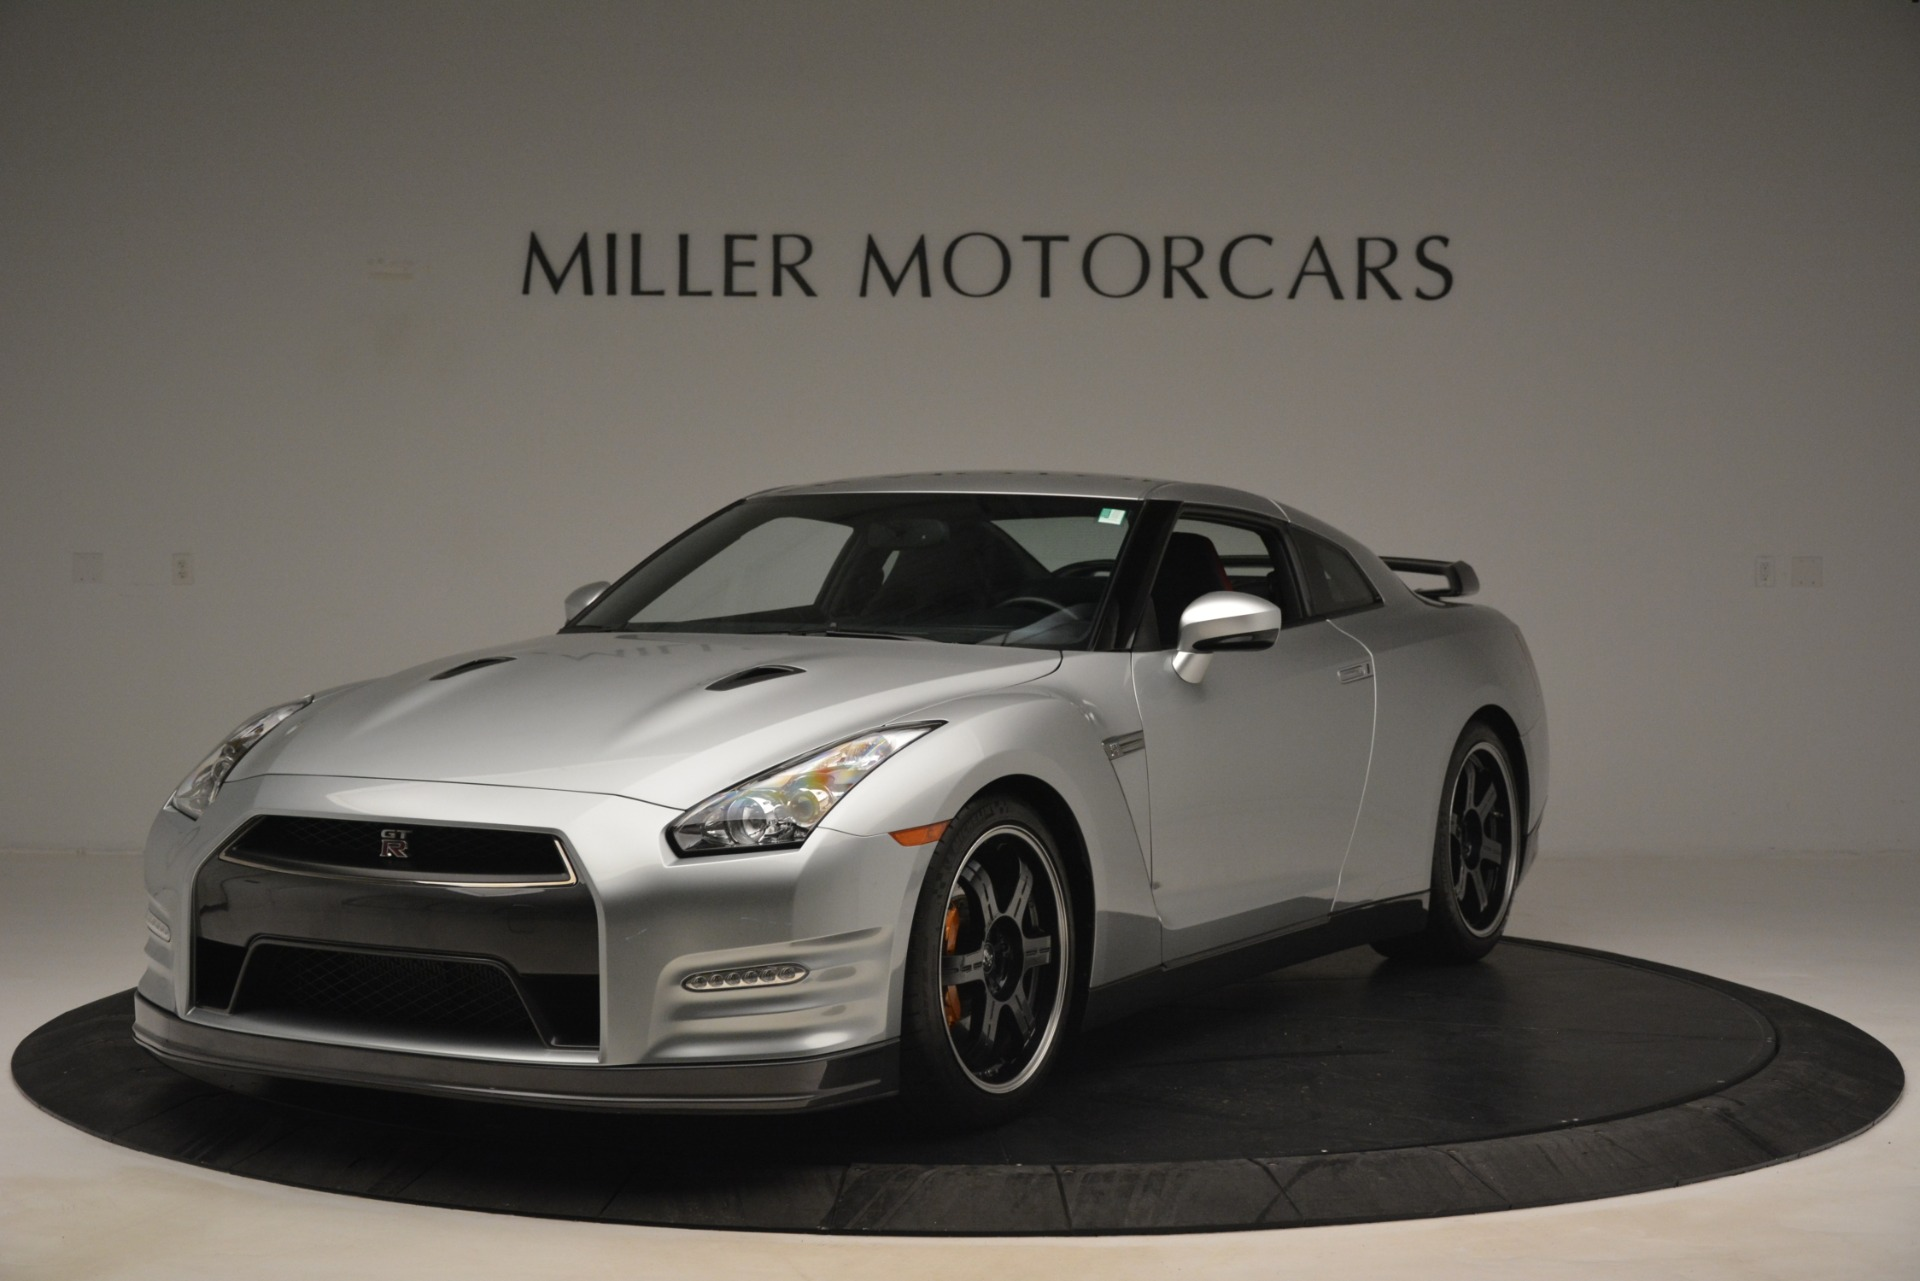 Used 2013 Nissan GT-R Black Edition for sale Sold at Pagani of Greenwich in Greenwich CT 06830 1